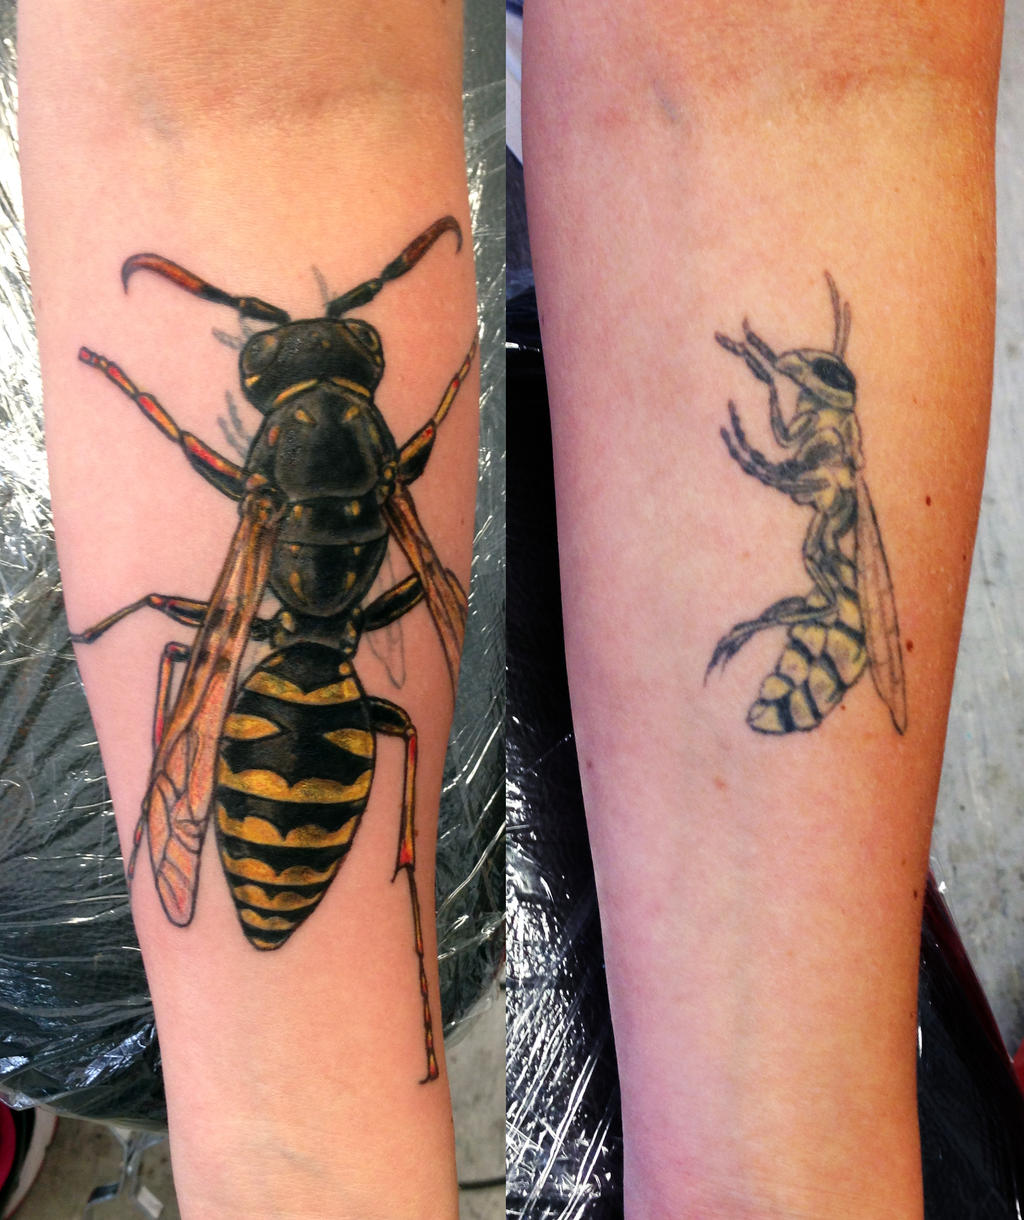 Wasp tattoo cover up